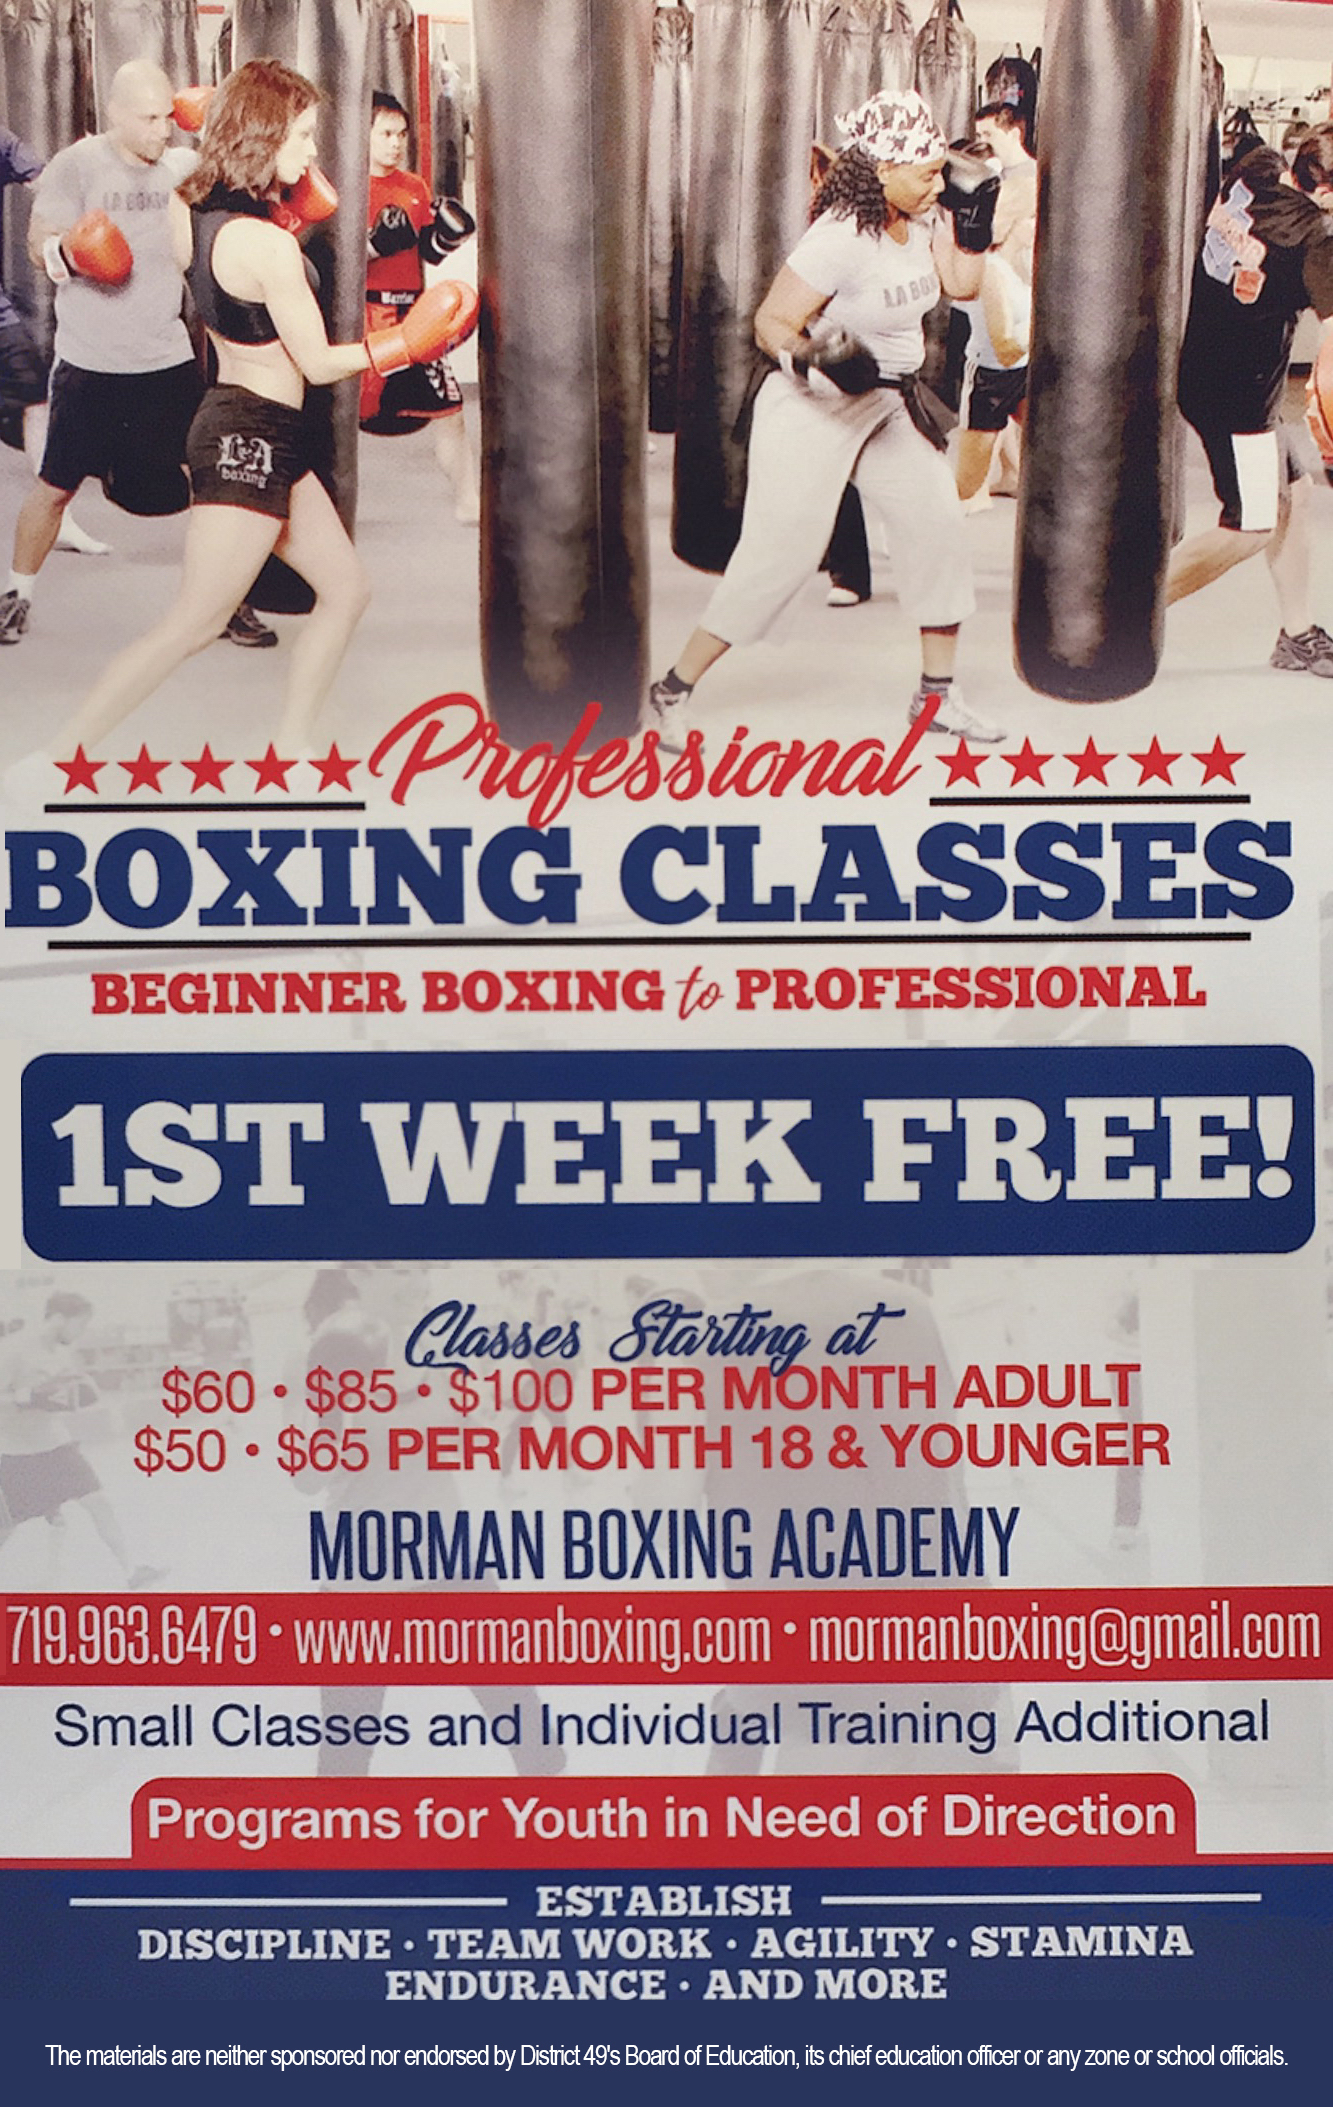 Morman Boxing